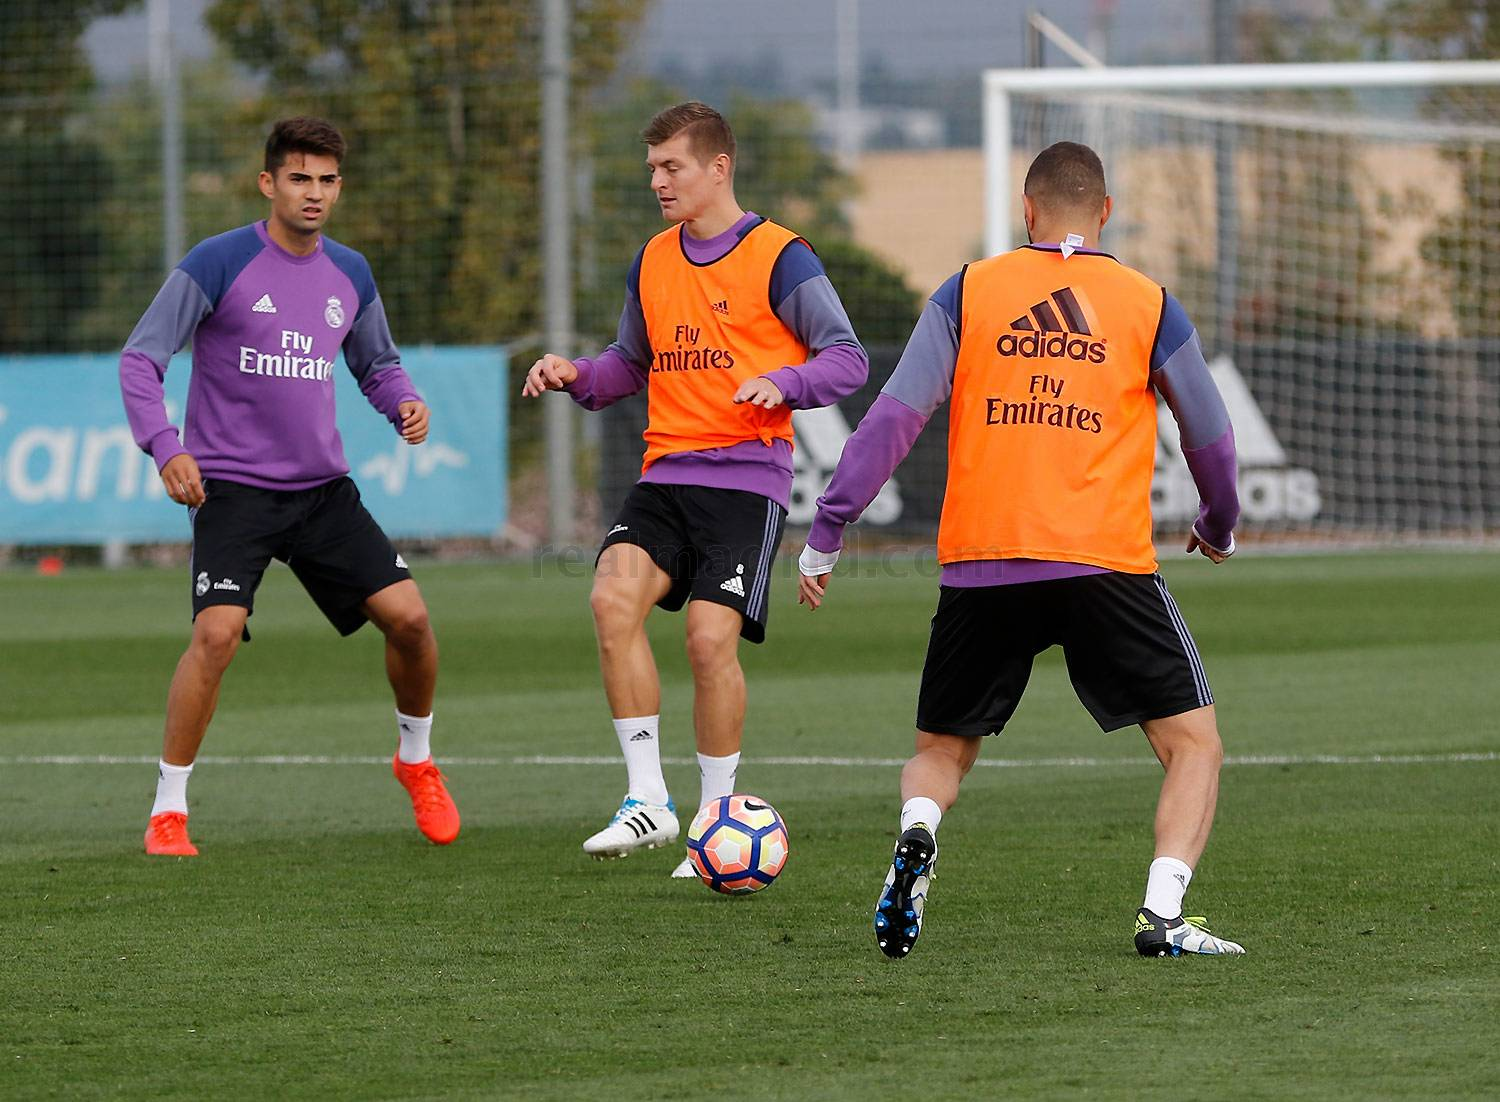 Real Madrid - Entrenamiento del Real Madrid - 13-10-2016